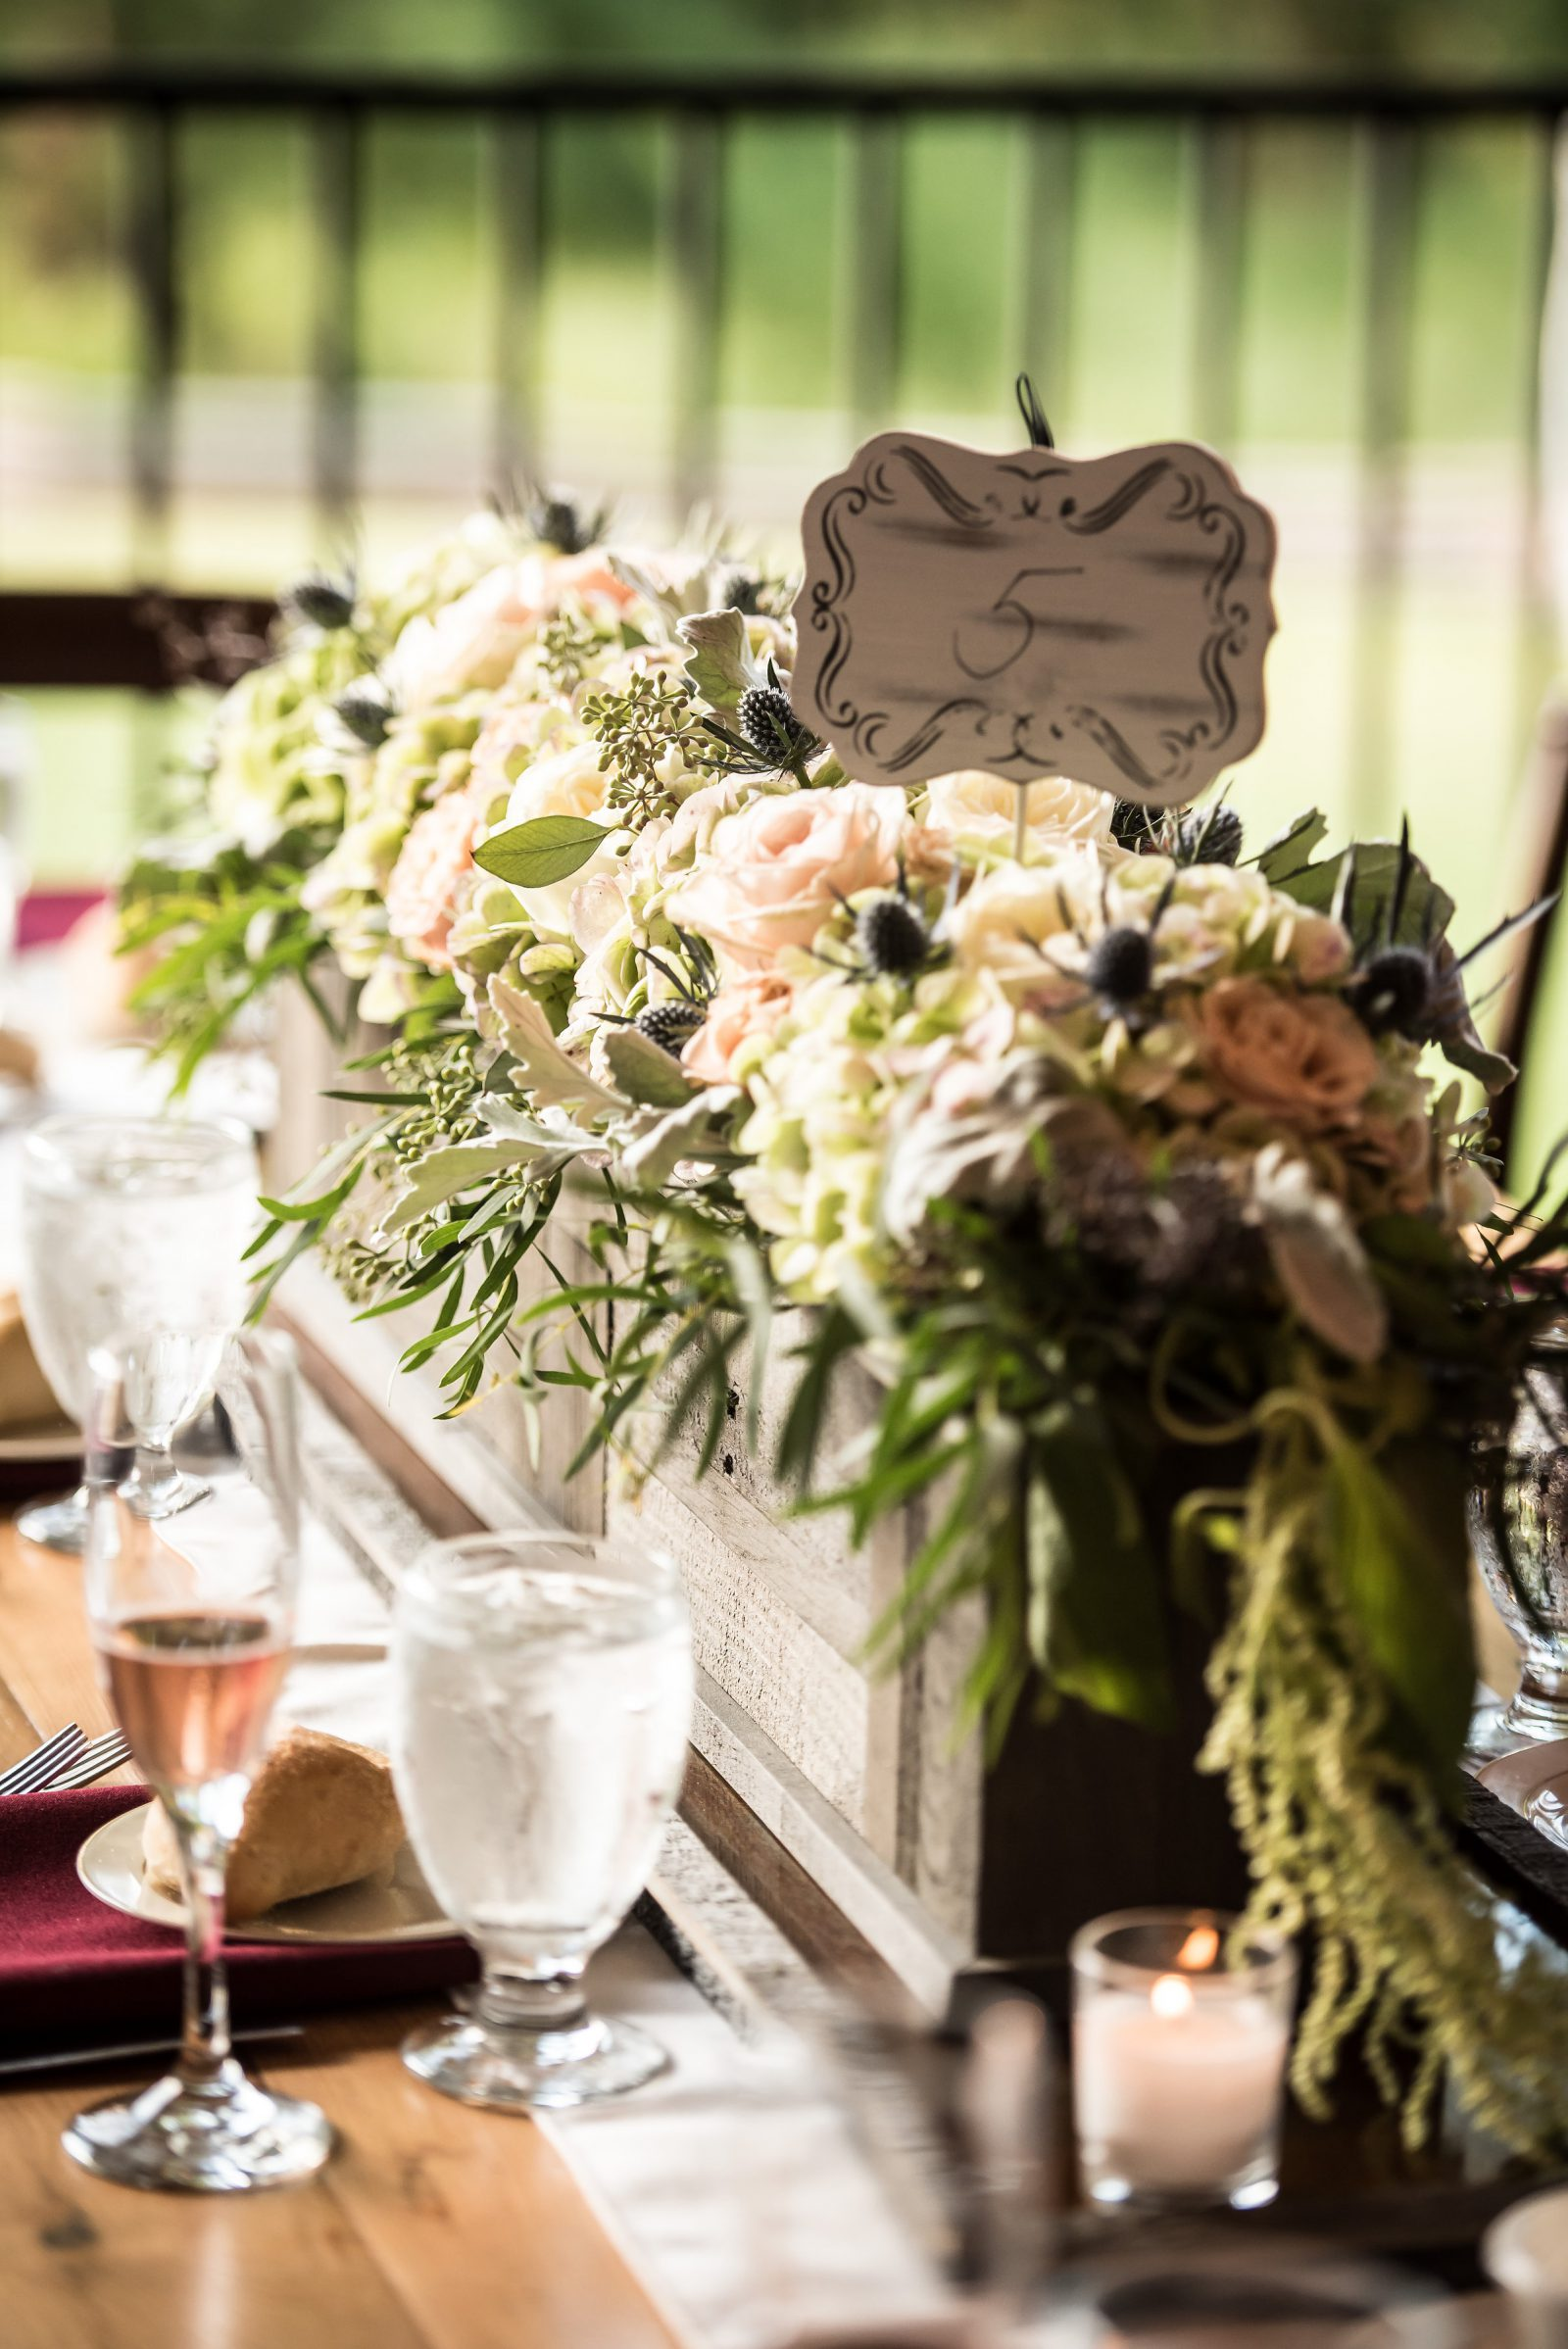 Rustic wooden planter filled with blush and ivory florals and flowing greenery by The Argyle Bouquet and table number sign. Photo by Christie Green Photography